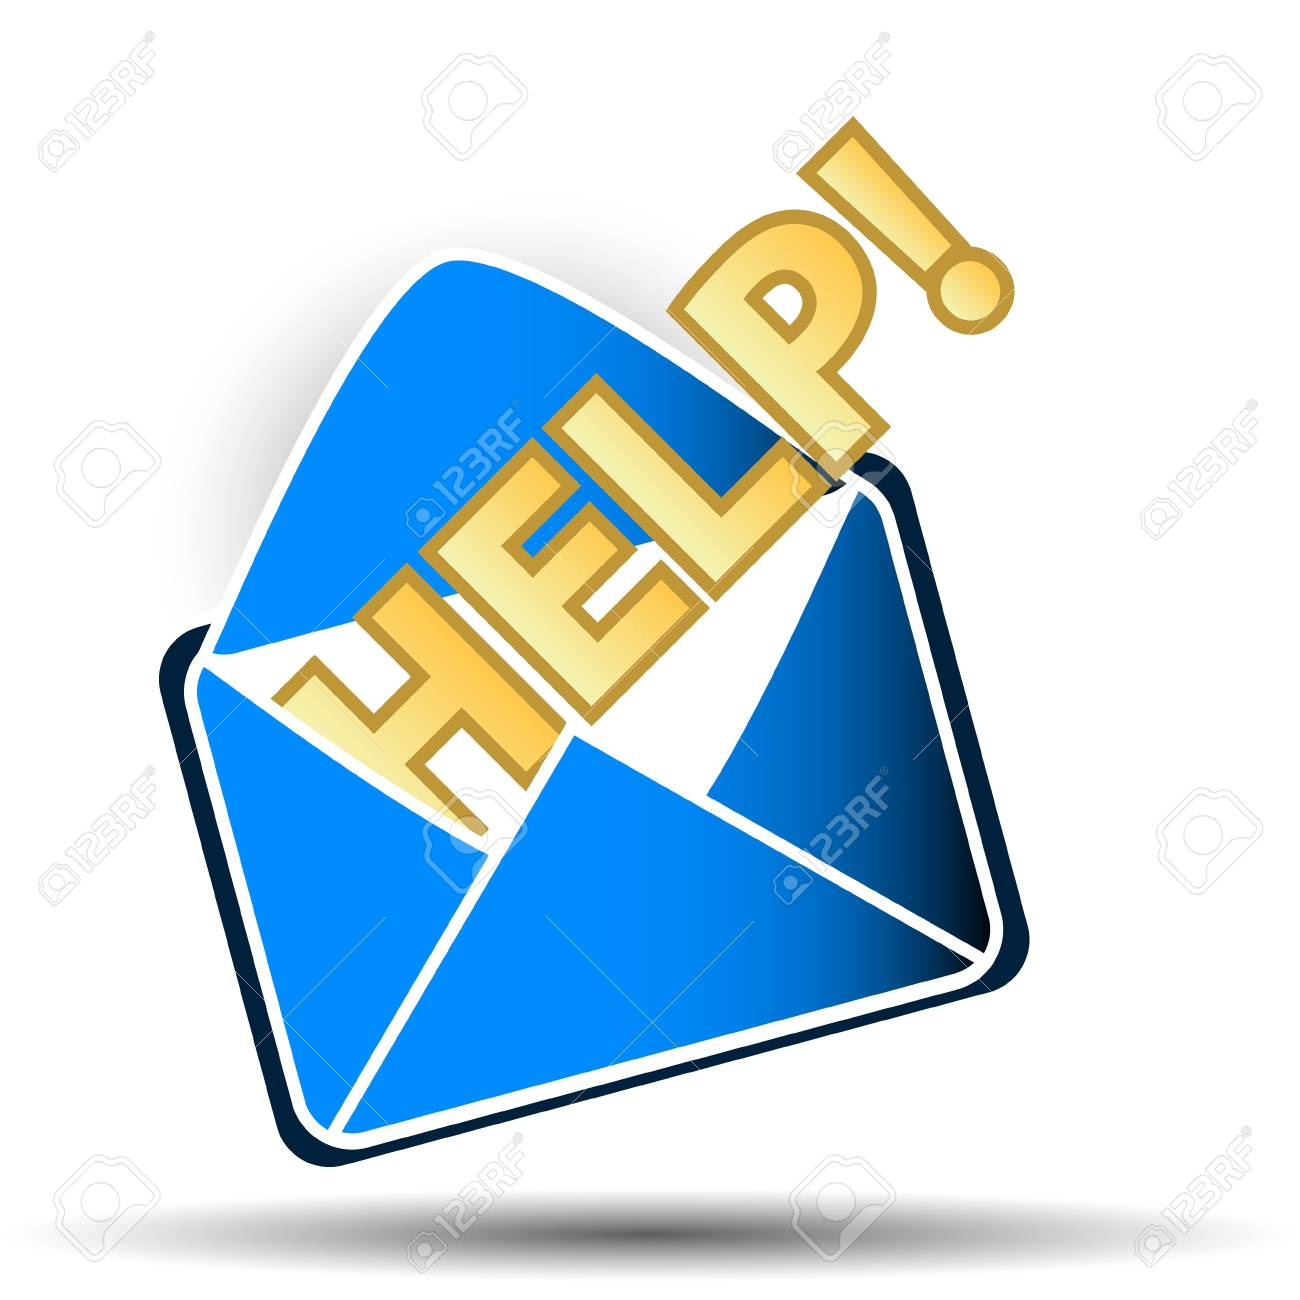 Fine help symbol on a white background Stock Vector - 16099005